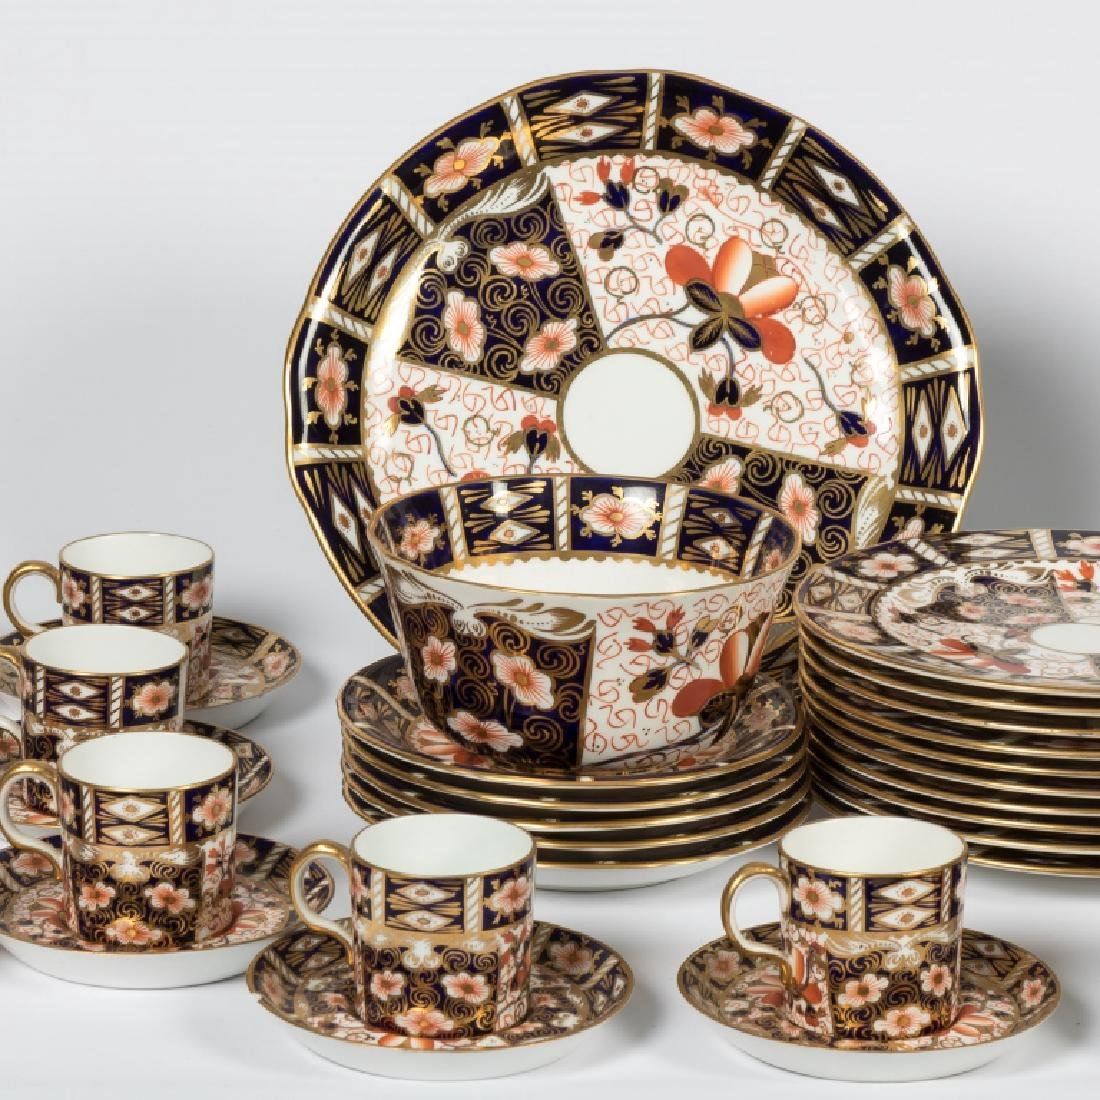 54 Piece Royal Crown Derby Old Imari Luncheon Set - 2